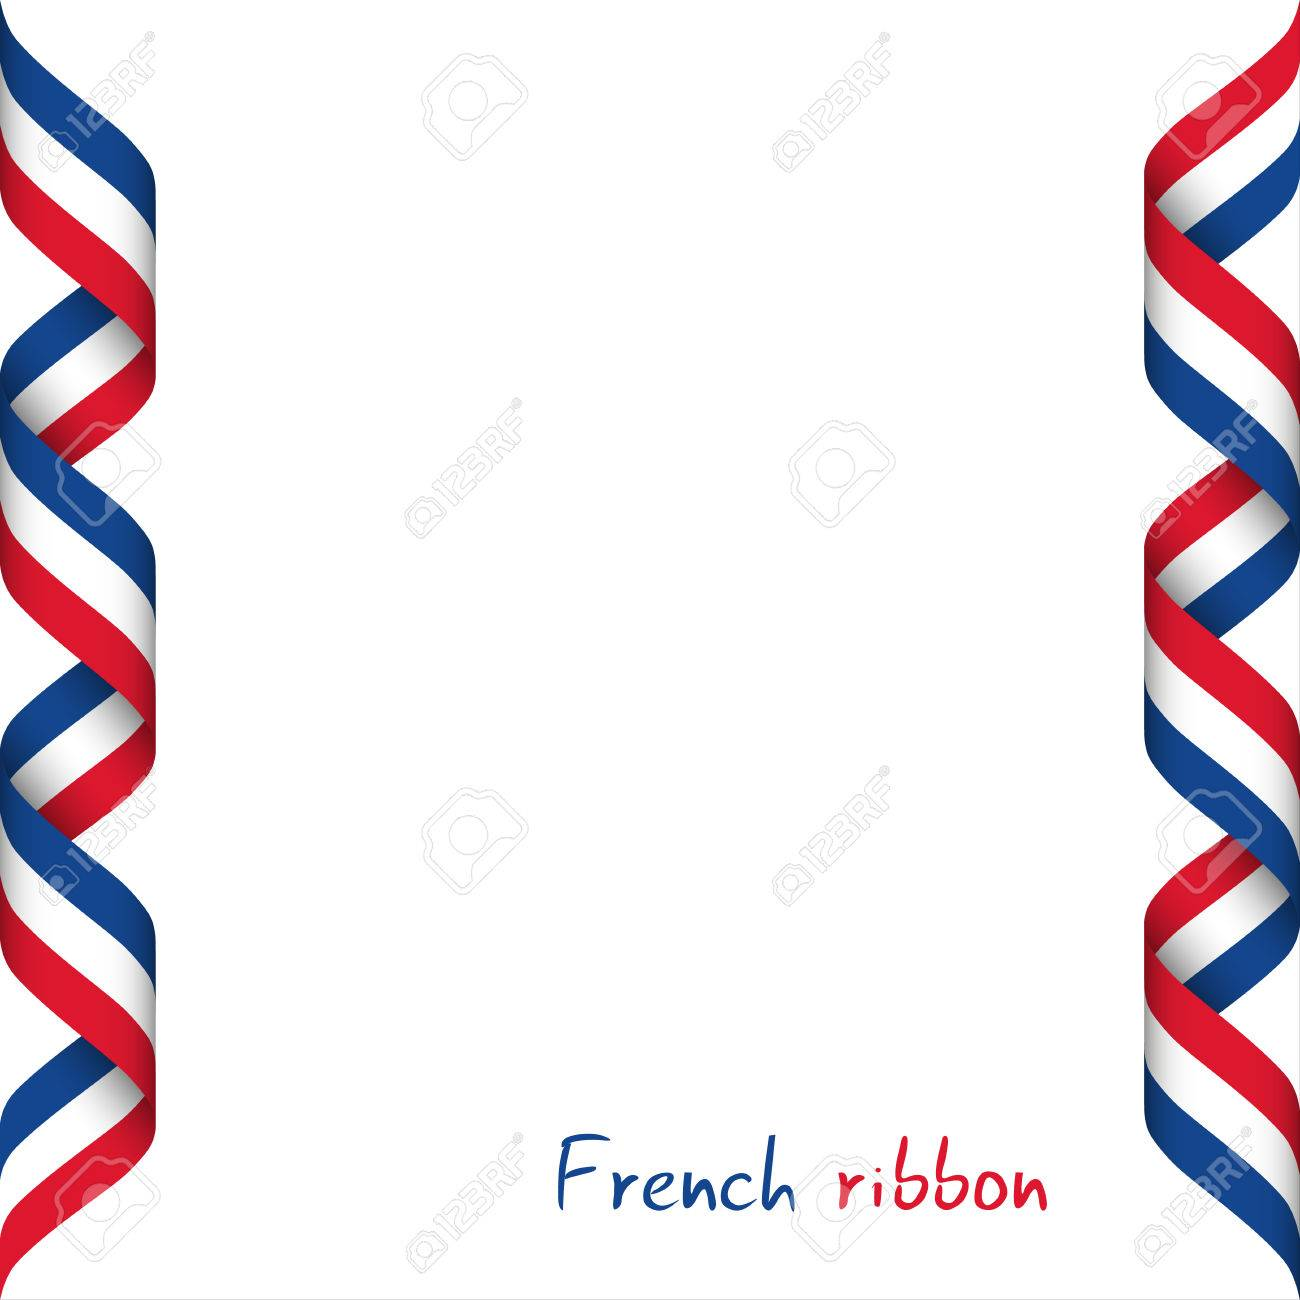 Colored ribbon with the french tricolor symbol of the french colored ribbon with the french tricolor symbol of the french flag isolated on white background biocorpaavc Gallery